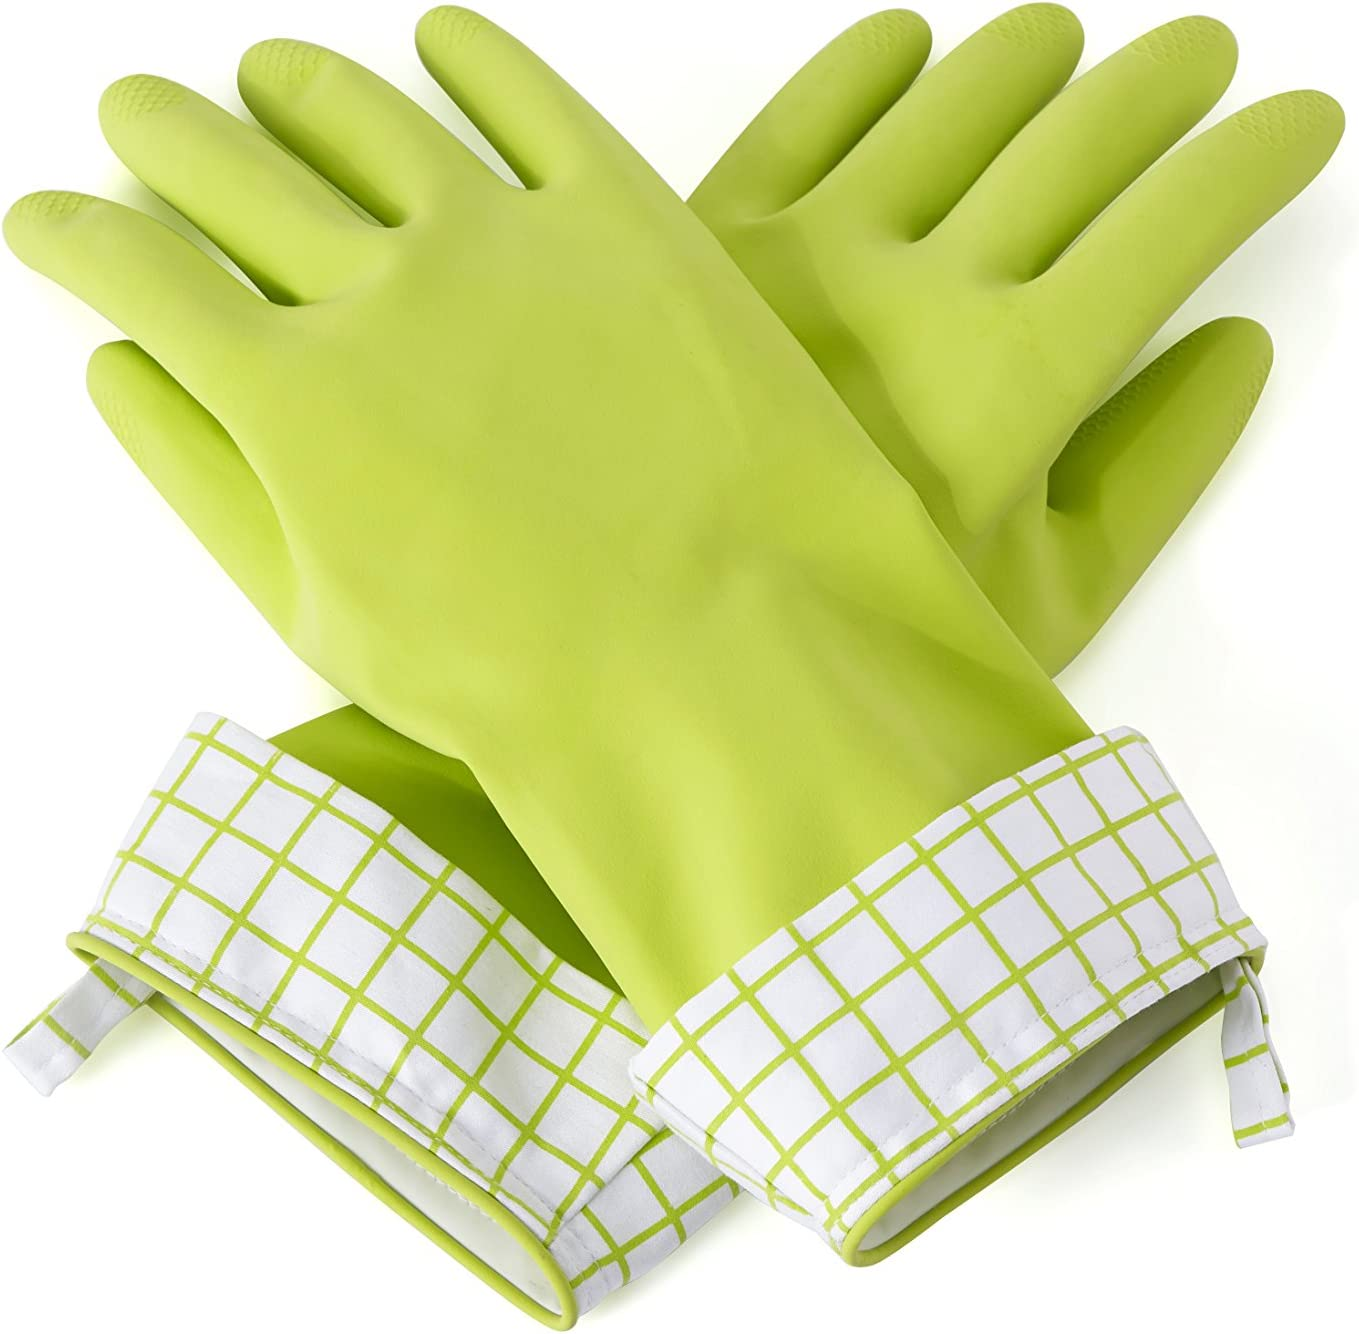 Full Circle Splash Patrol Natural Latex Cleaning and Dish Gloves, Medium/Large, Green